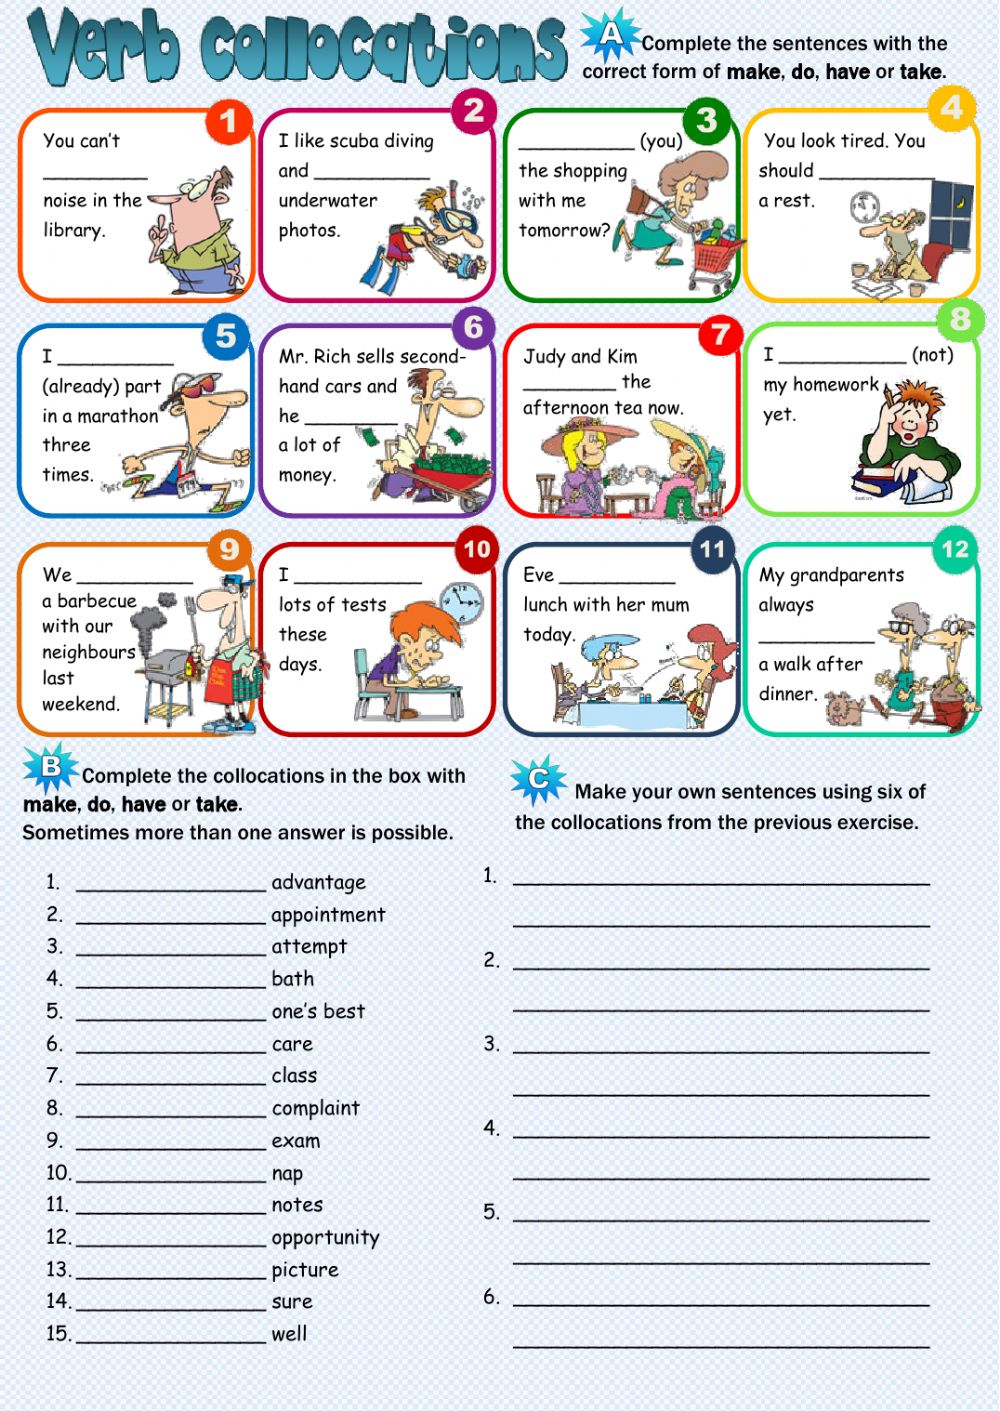 Verb collocations - Interactive worksheet